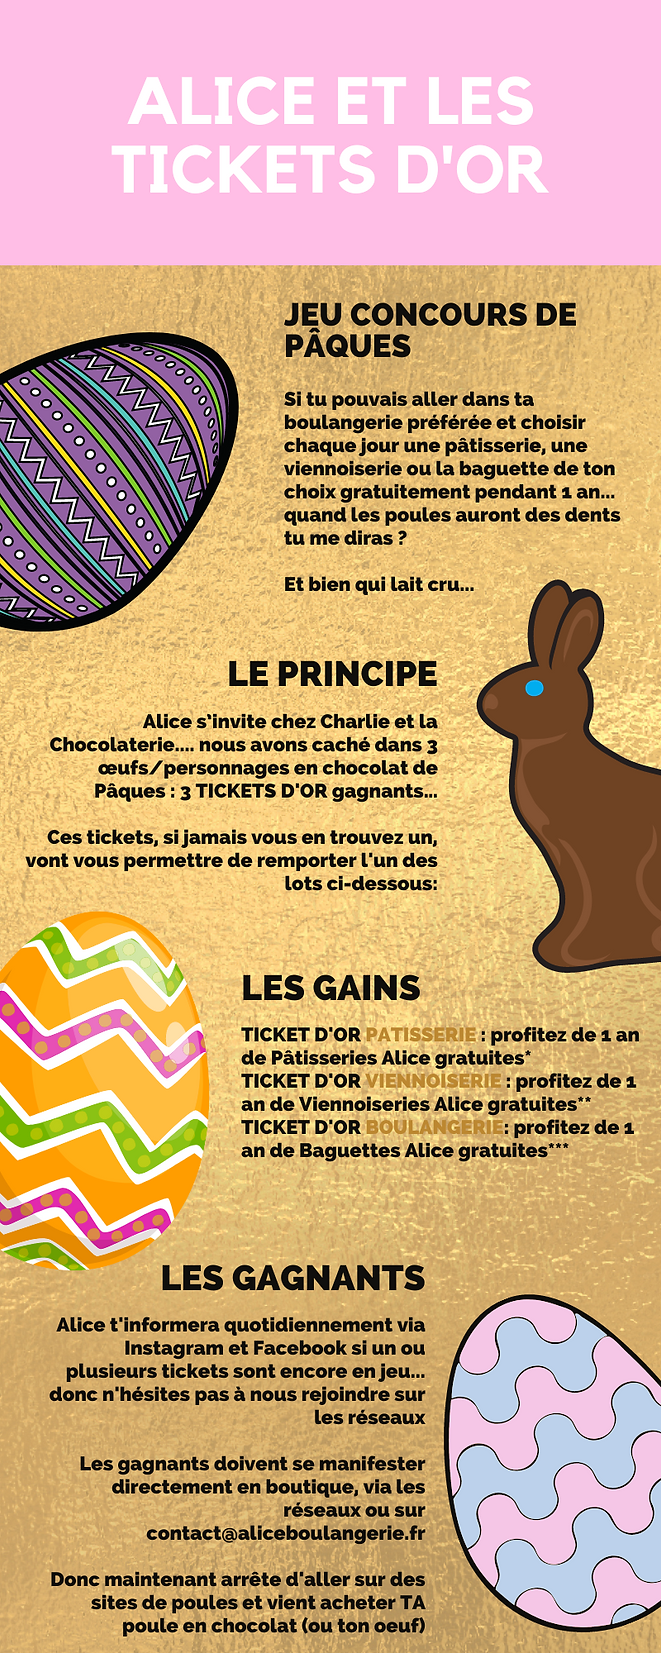 Alice et les tickets d'or (1).png